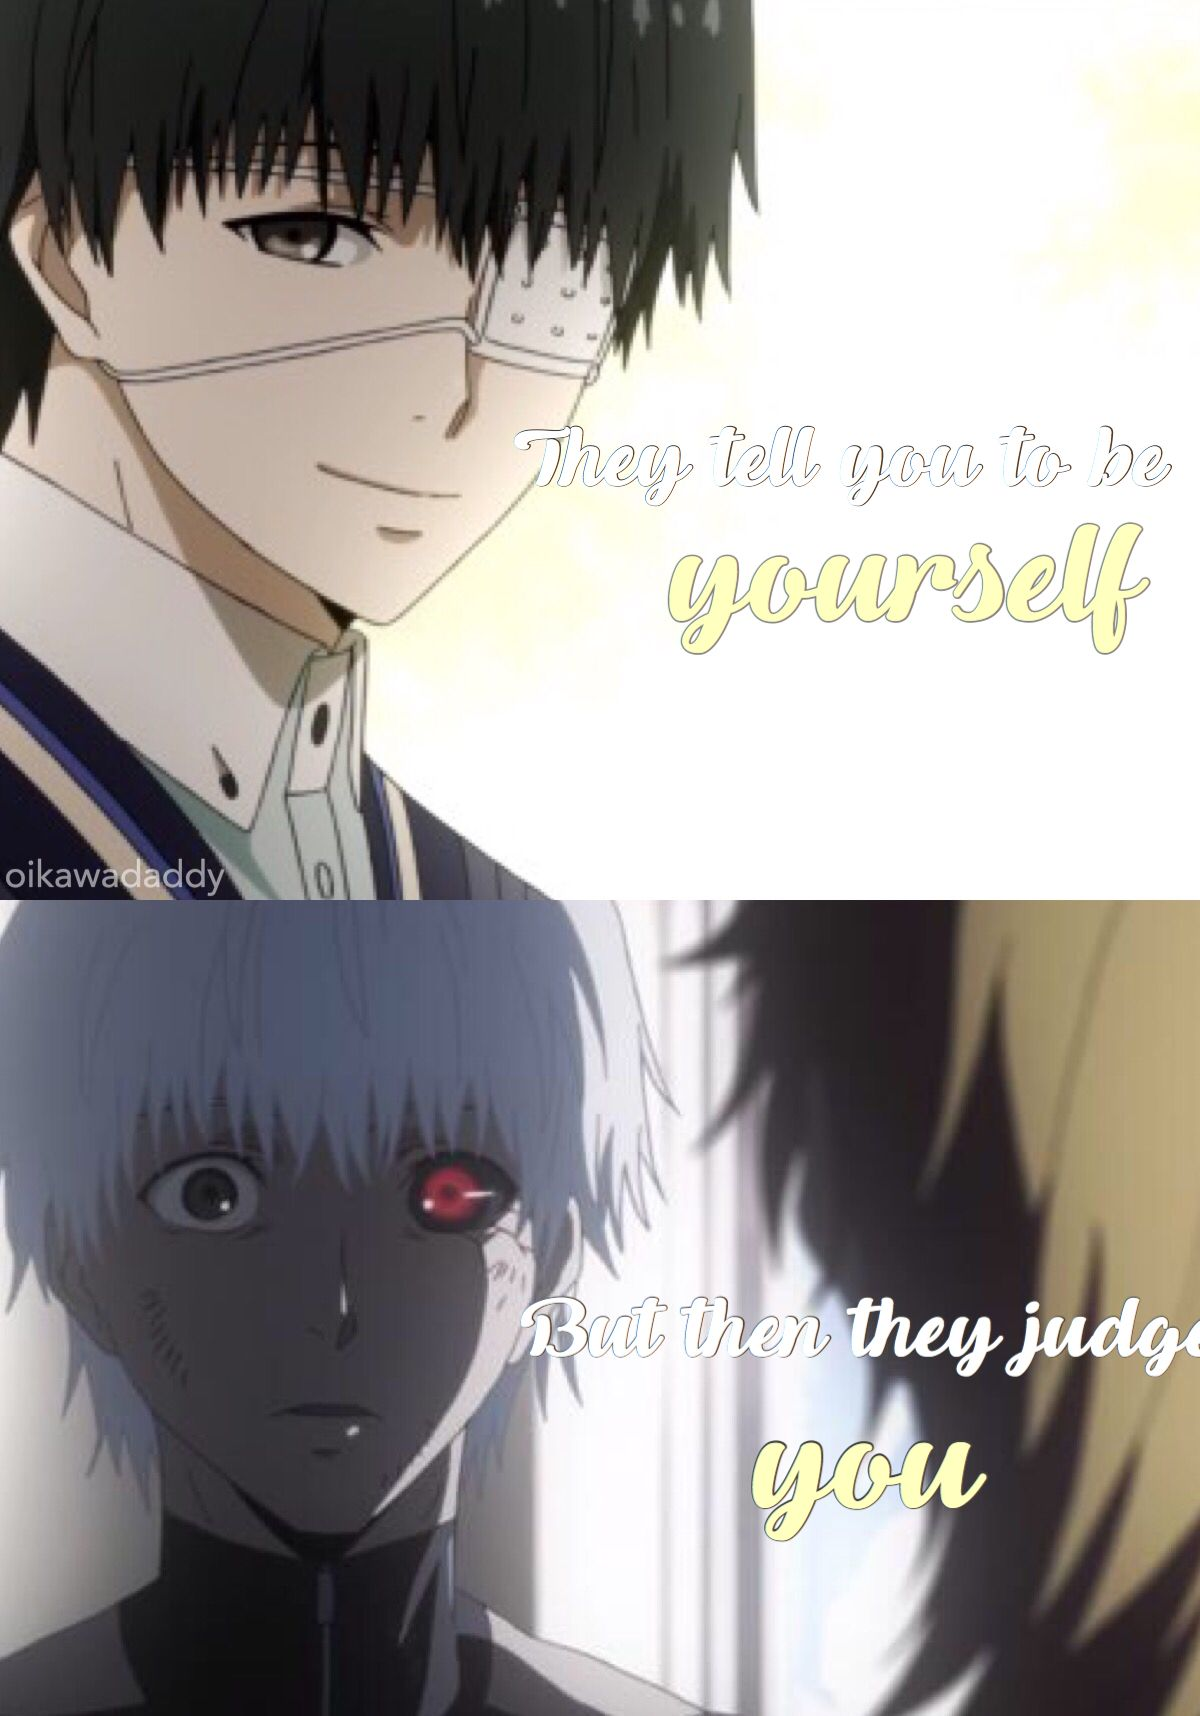 Anime Quote By Me Tokyo Ghoul Quotes Anime Tokyo Ghoul